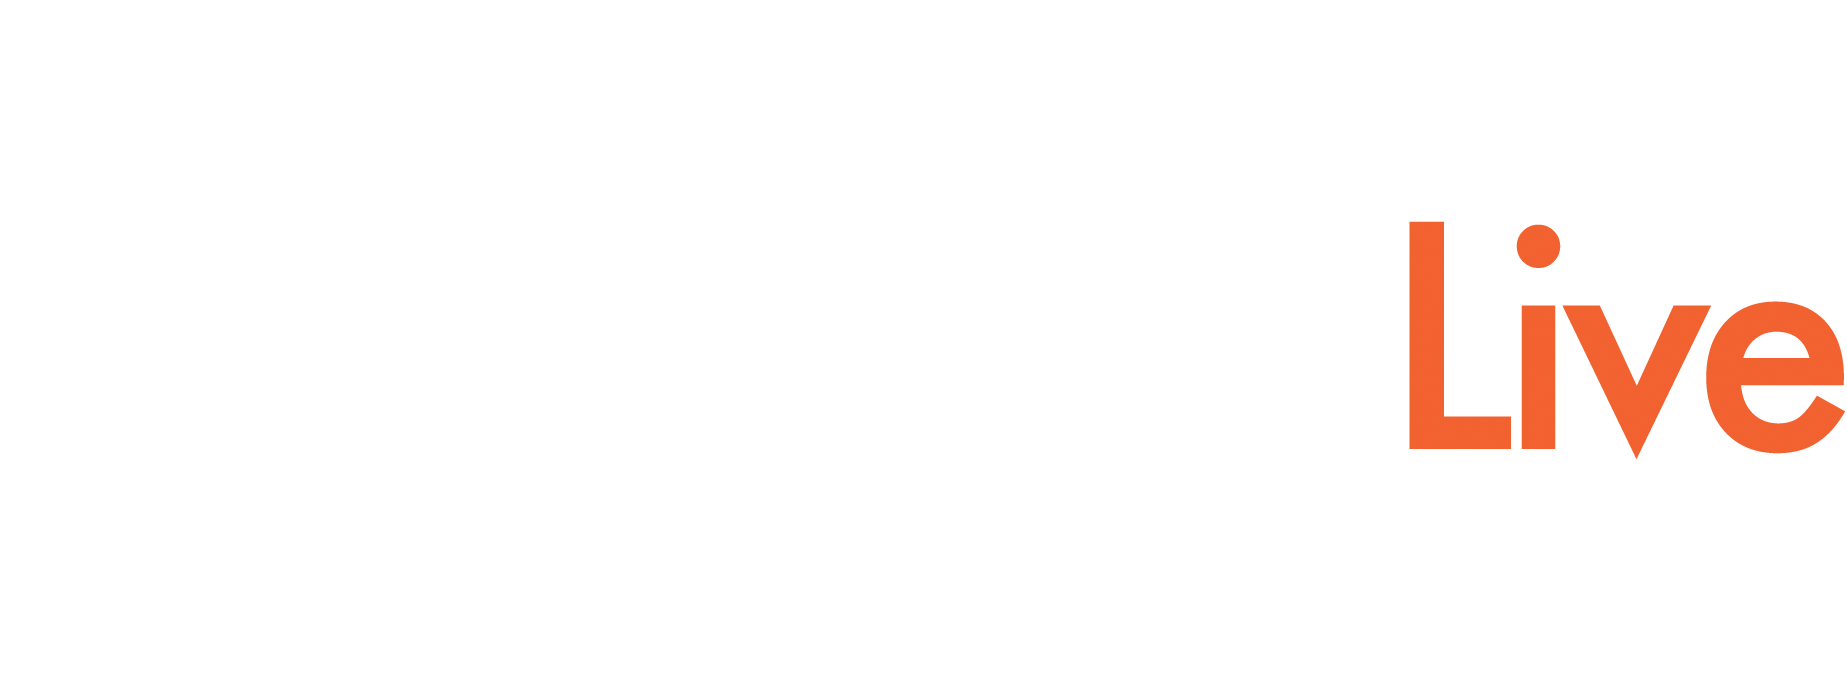 cinemalive logo